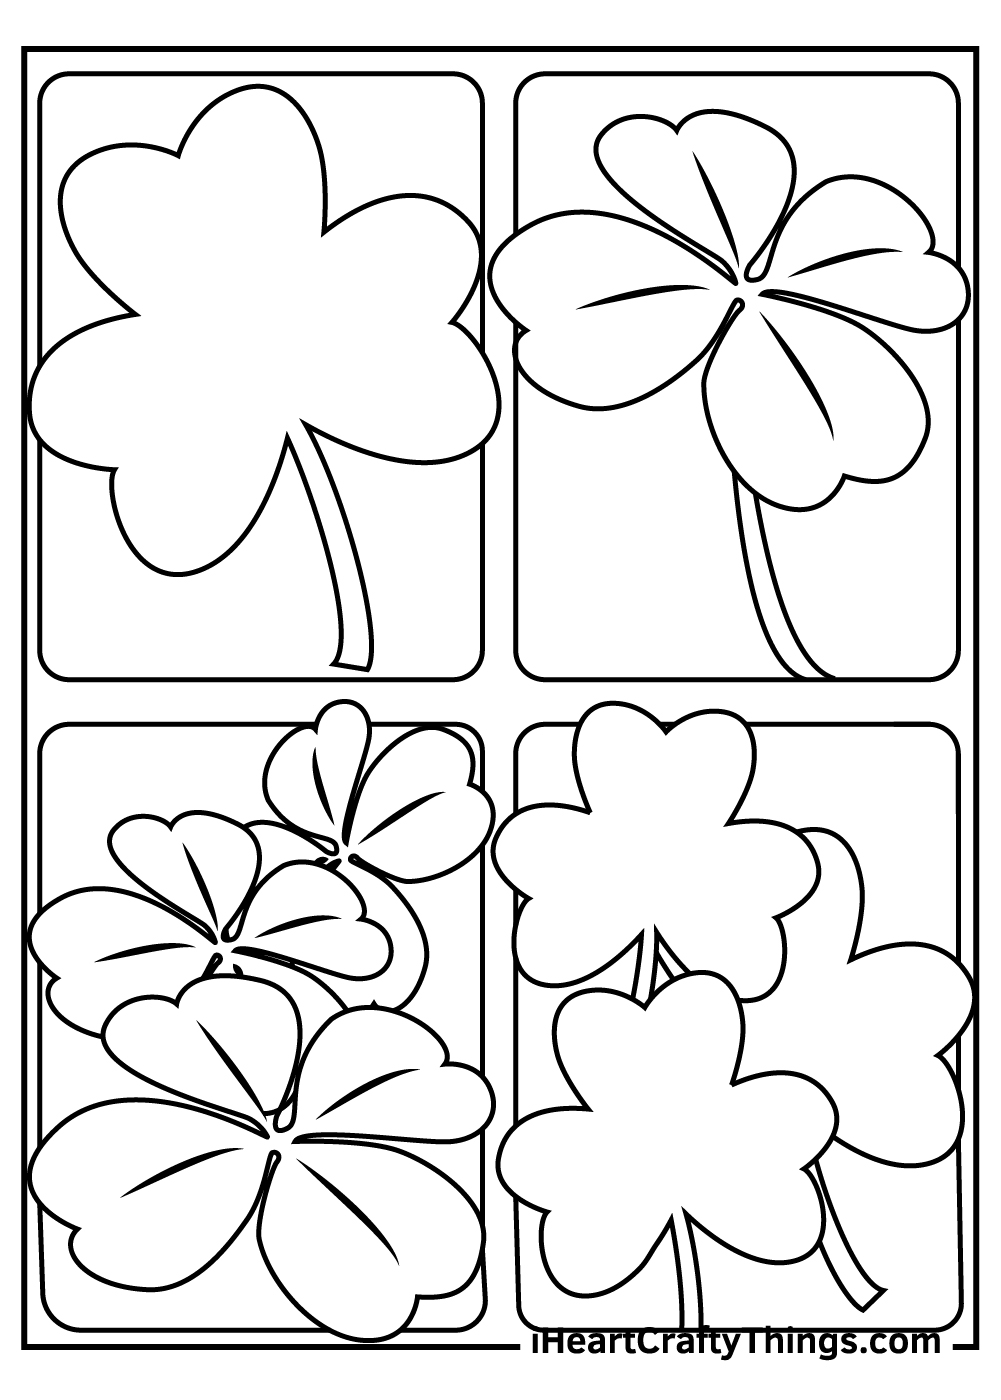 black and white printable shamrock coloring pages